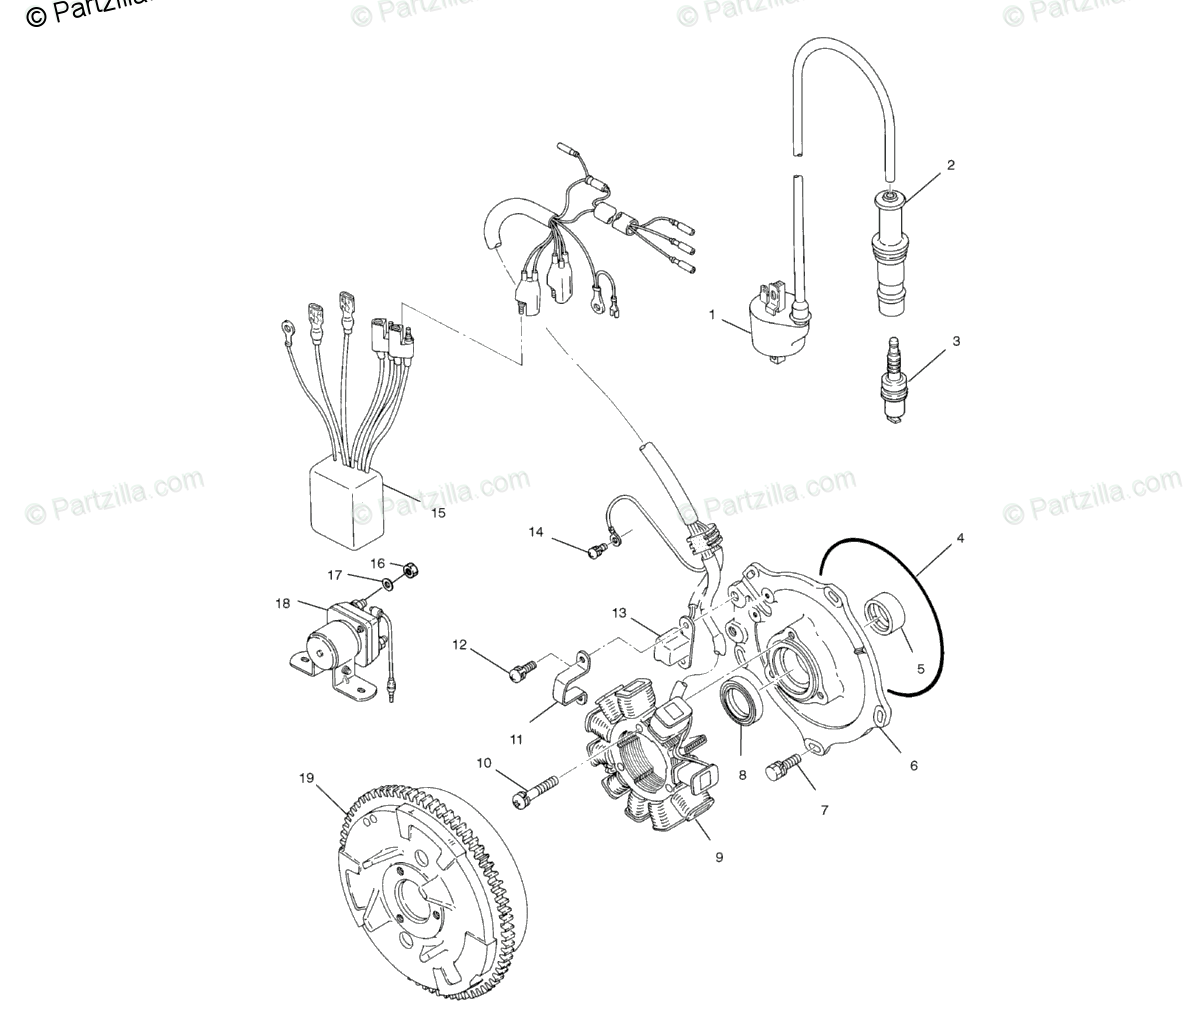 Polaris Side By Side Series 10 Oem Parts Diagram For